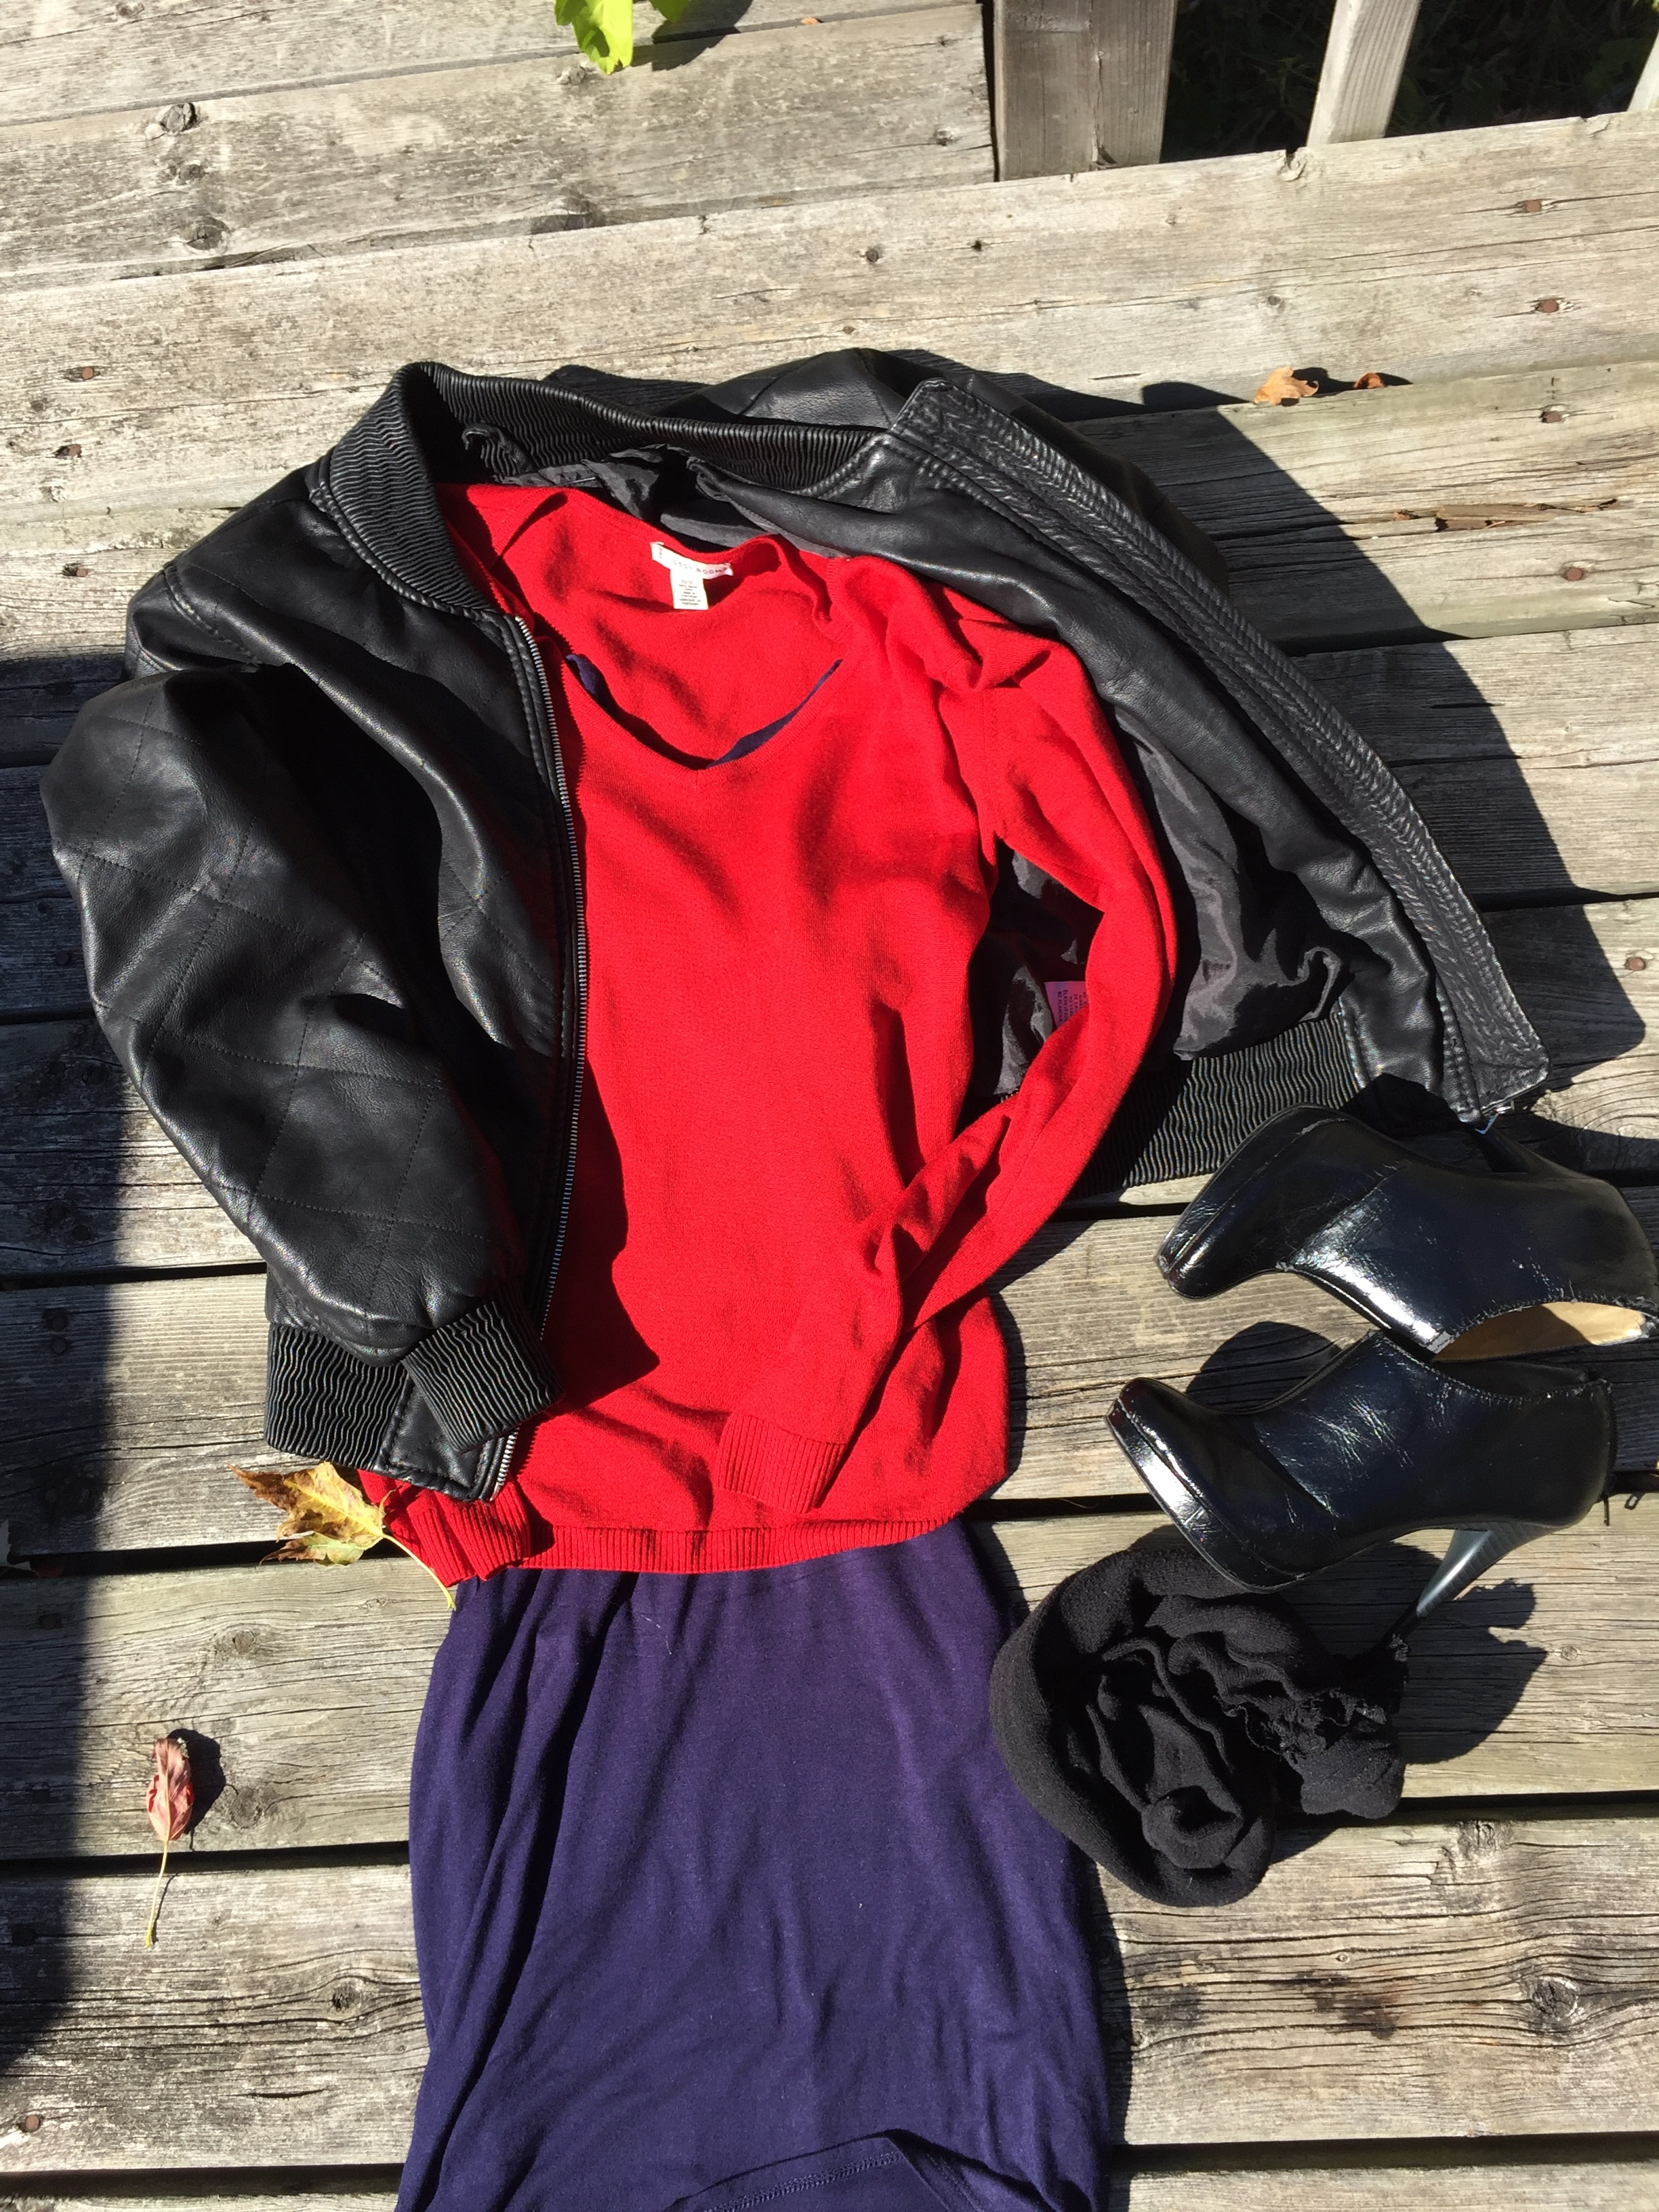 Navy dress, red cashmere sweater and faux leather jacket